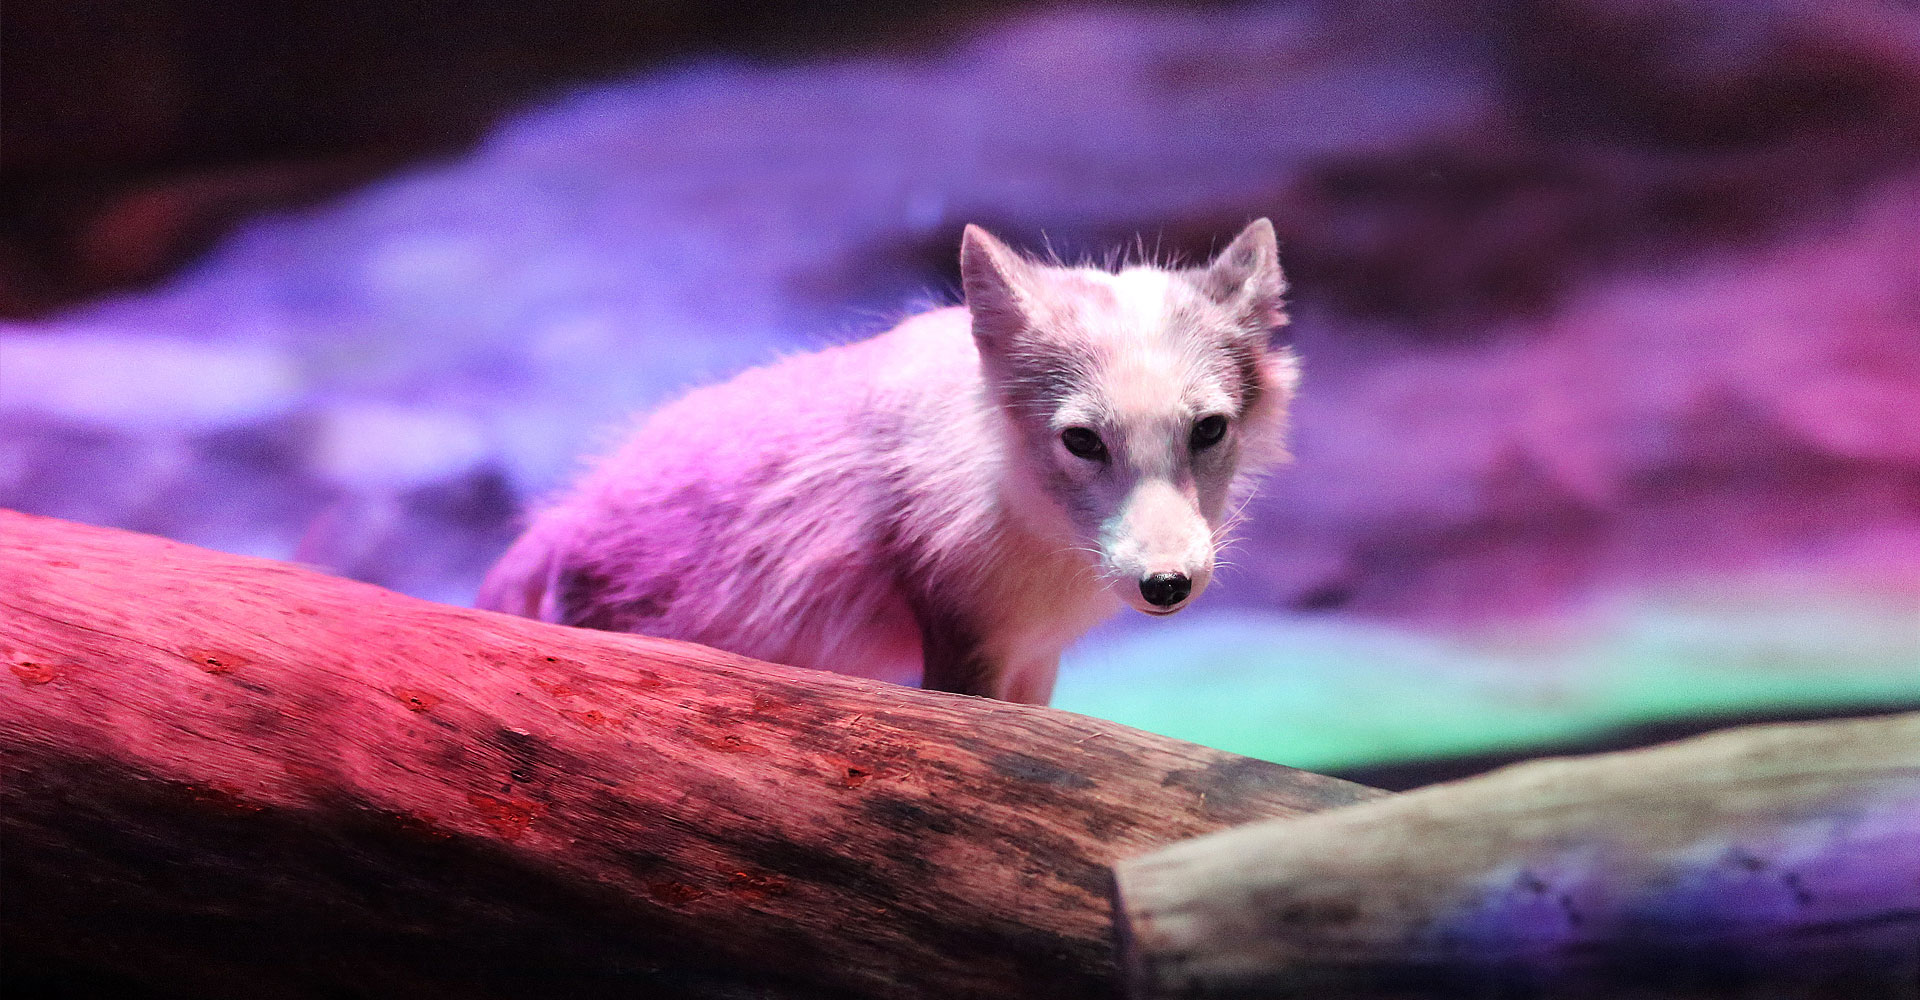 https://media.oceanpark.cn/files/s3fs-public/arctic_fox_den_bg01.jpg